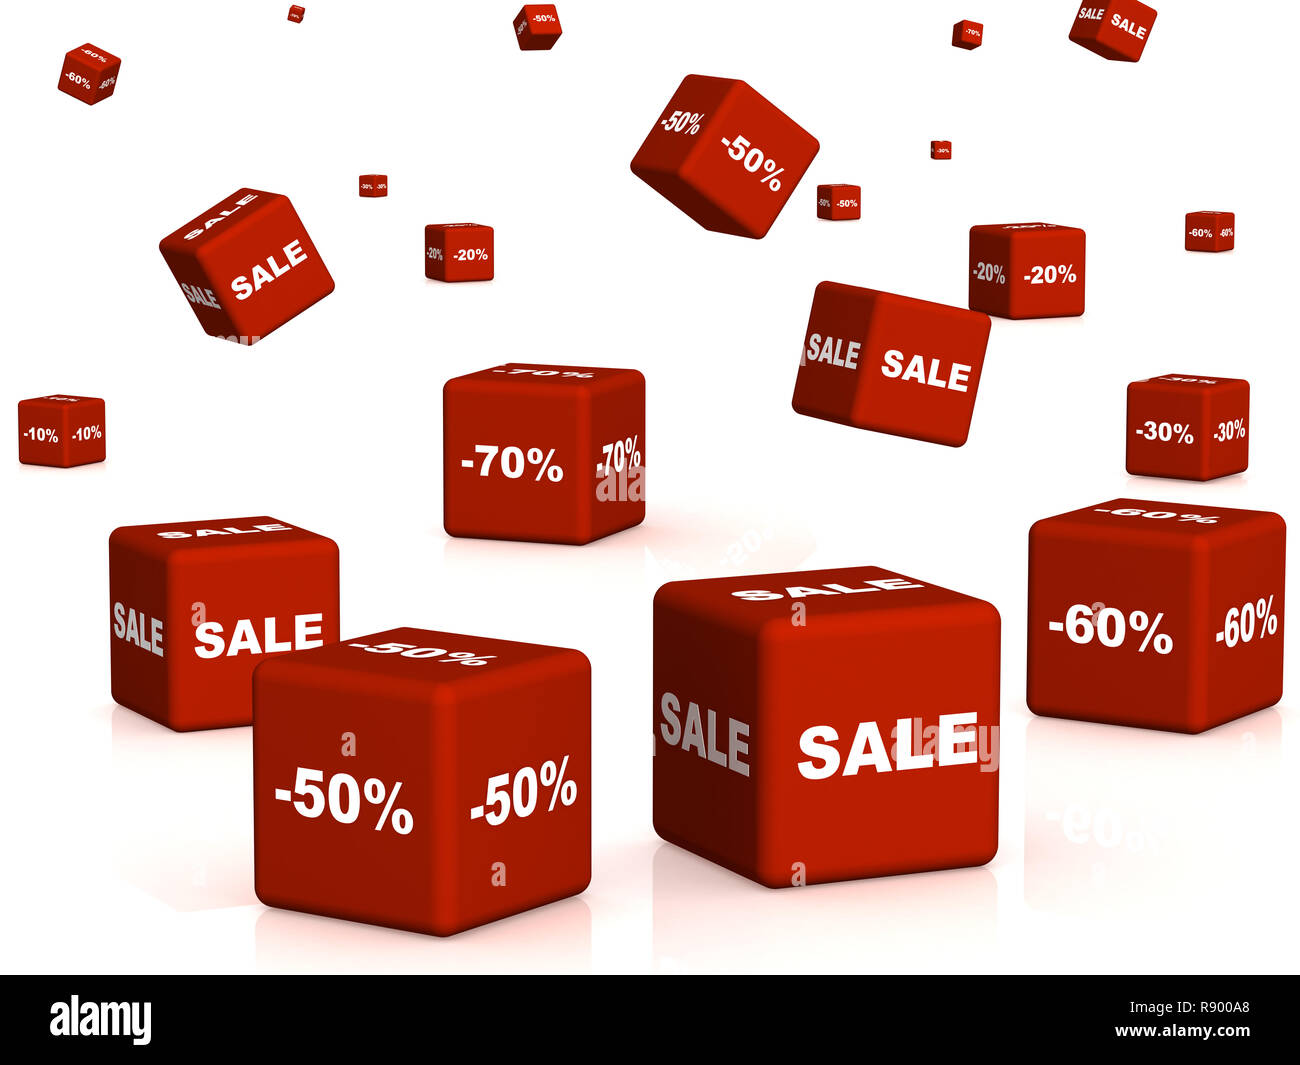 Red boxes with the goods at a discount. Objects over white - Stock Image